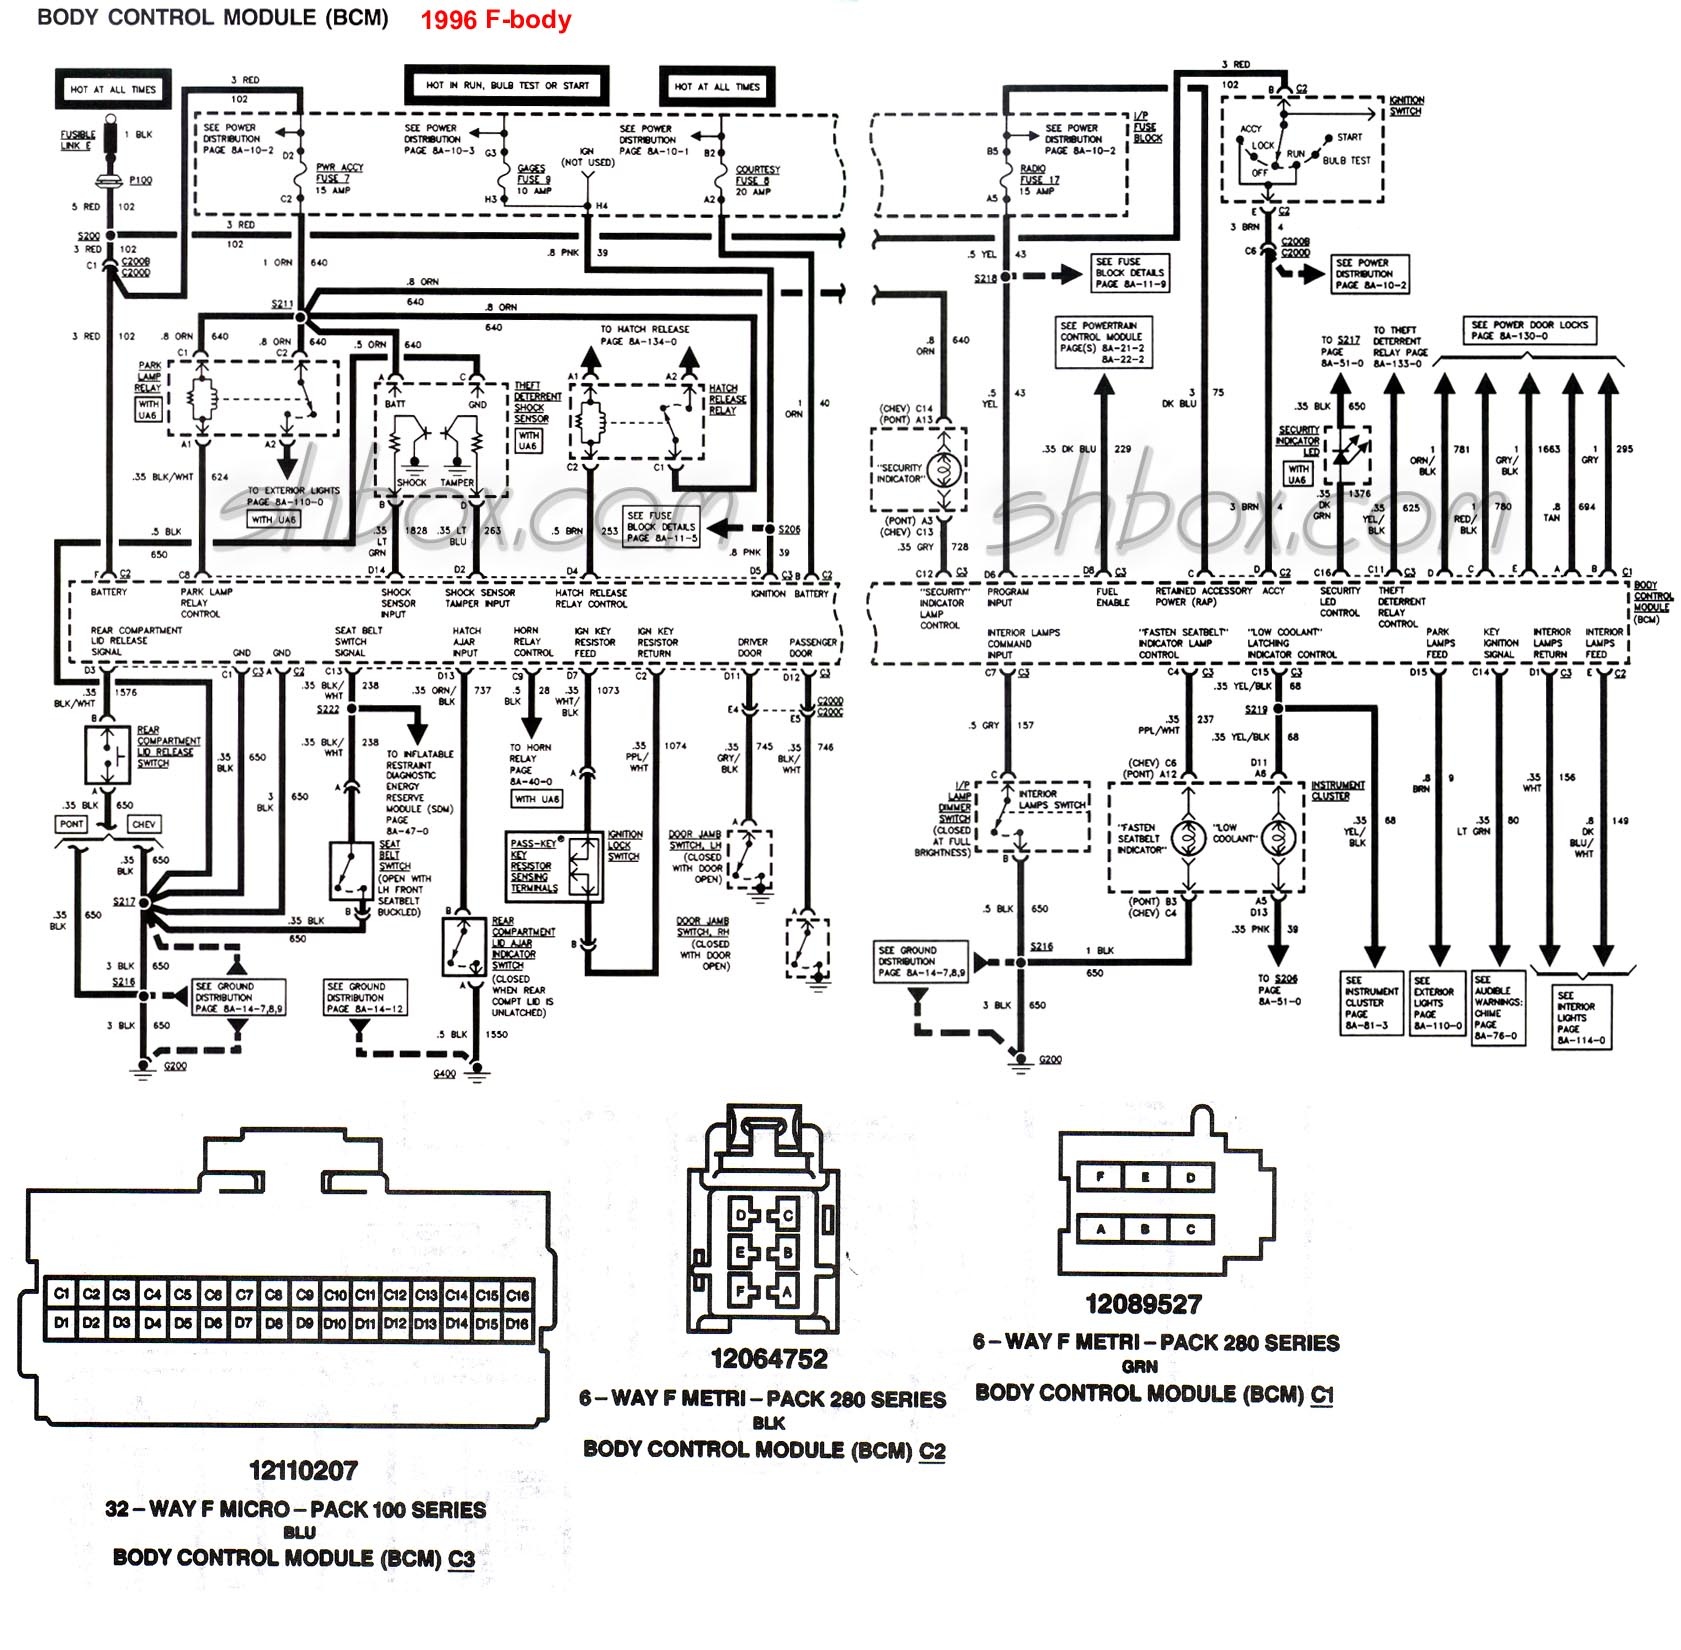 hight resolution of 99 camaro fuse diagram manual e book99 camaro wiring diagram wiring diagram used4th gen lt1 f